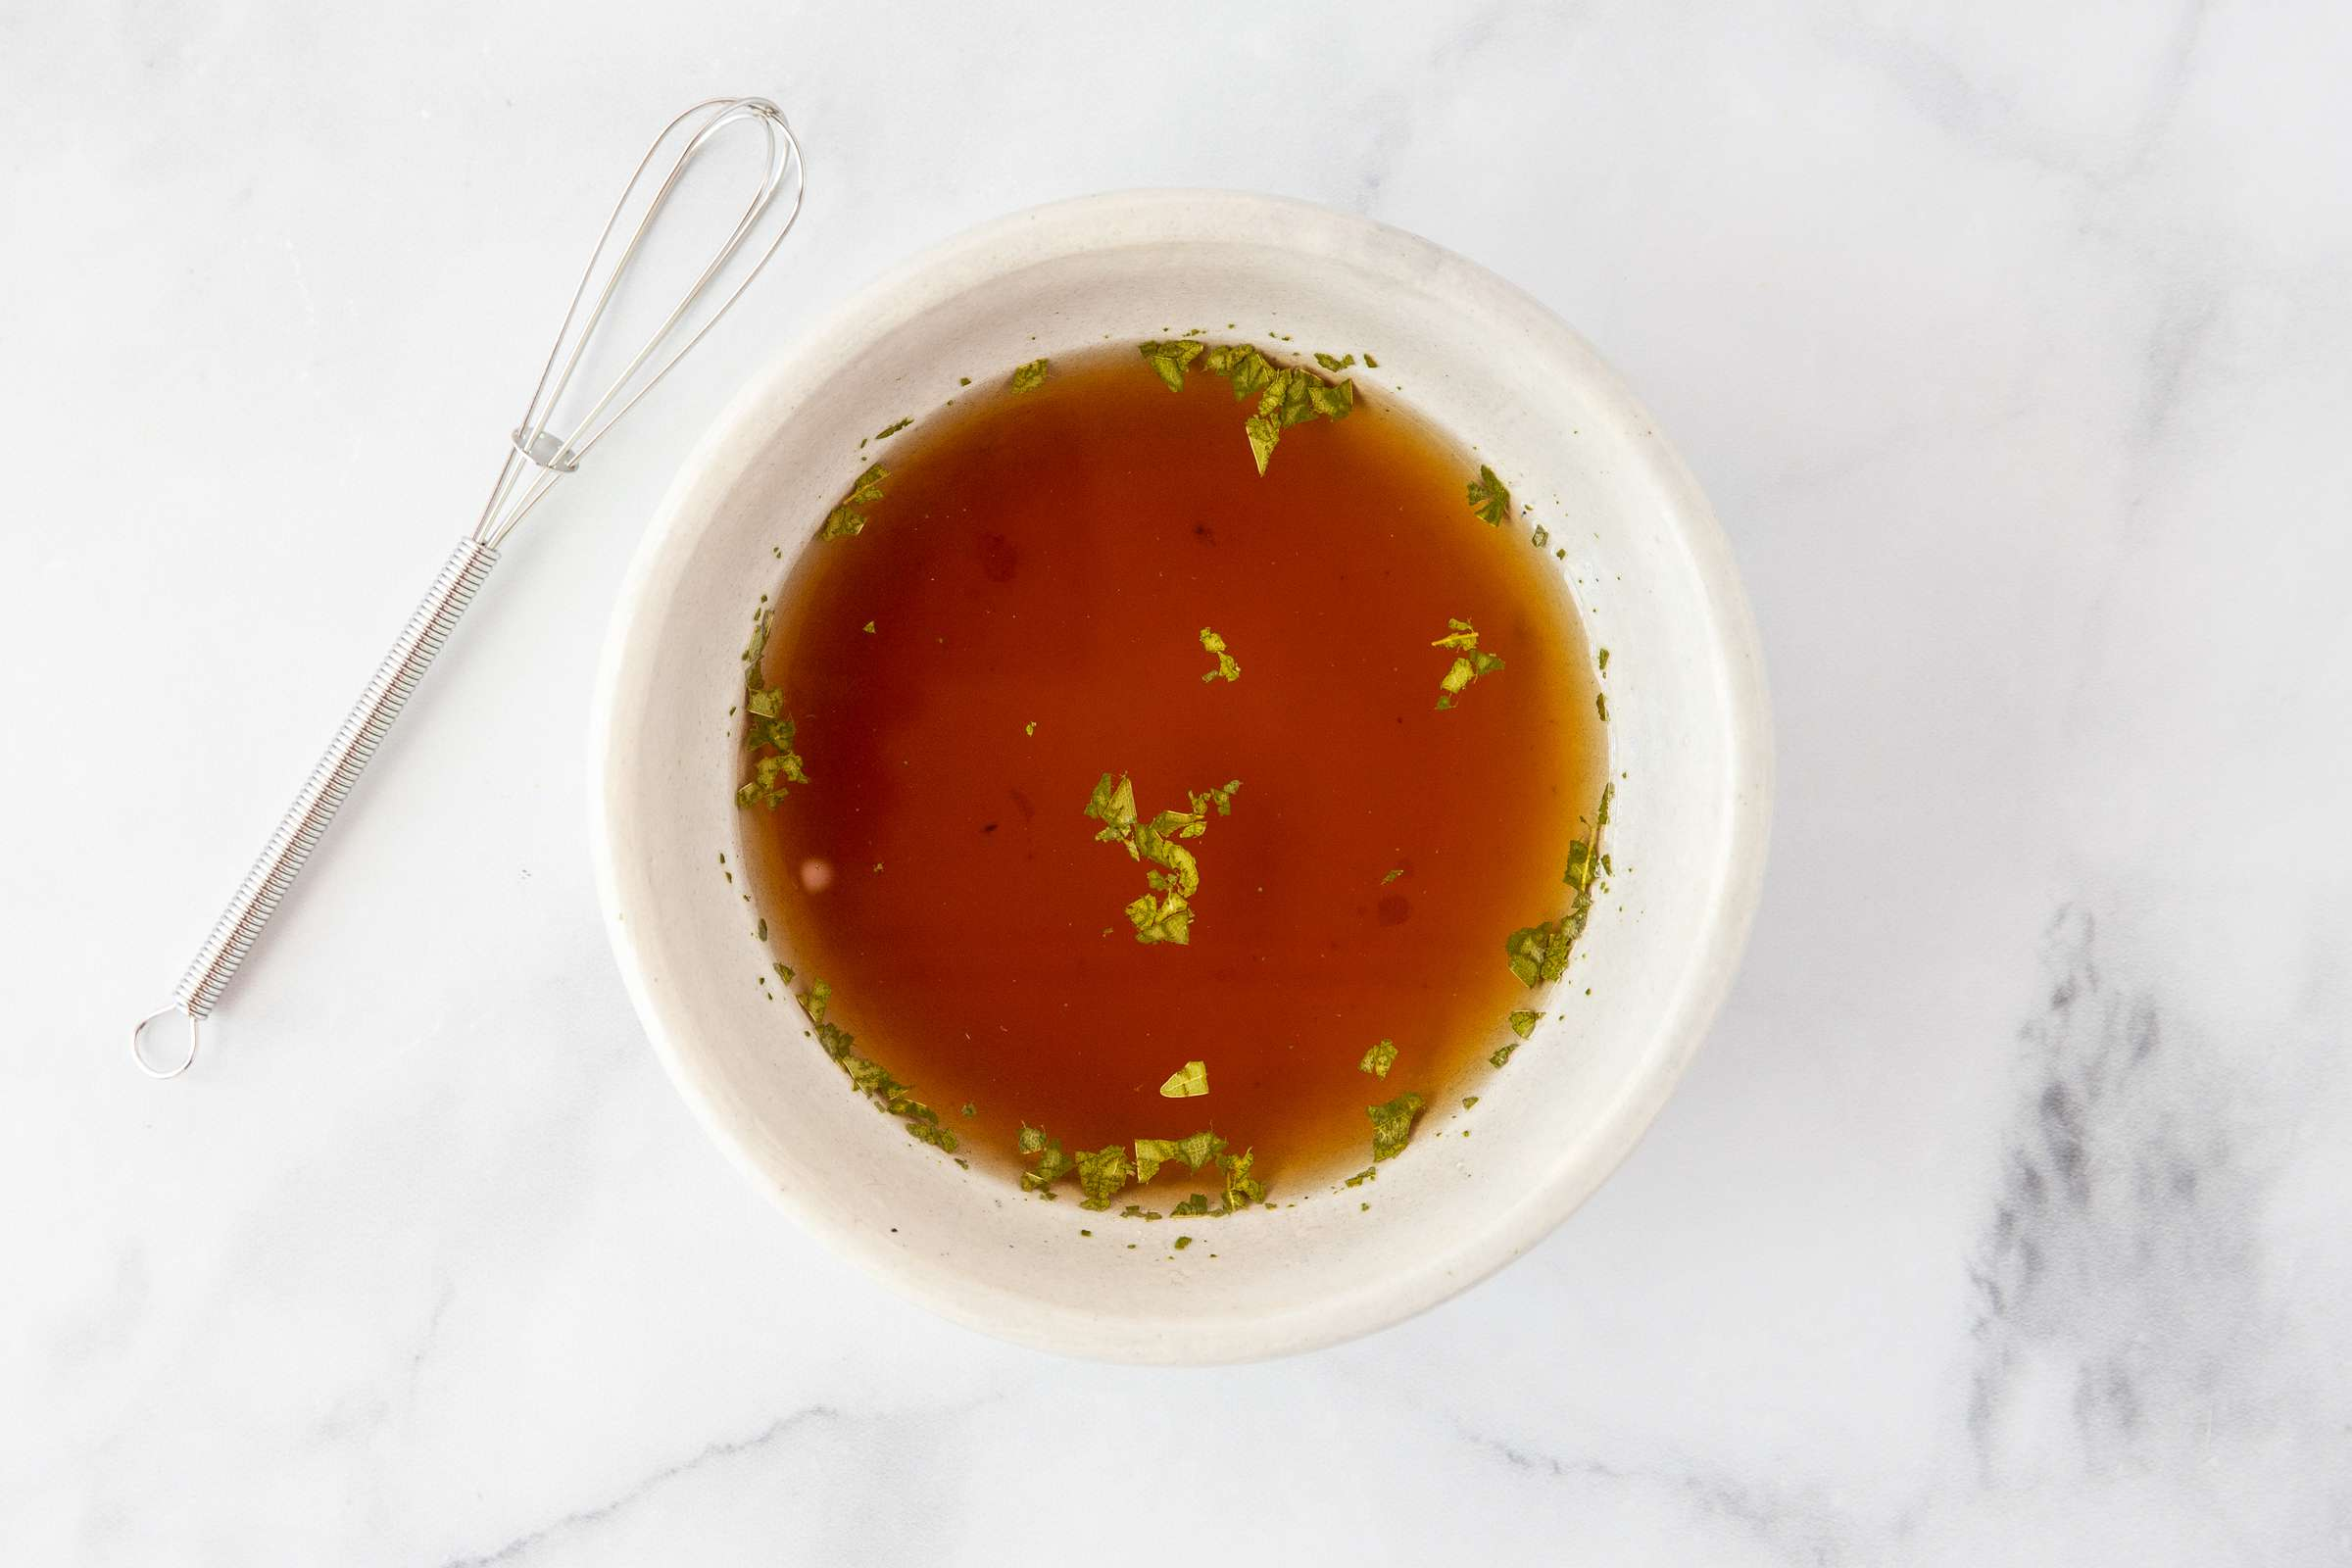 Combine marinade ingredients in a bowl